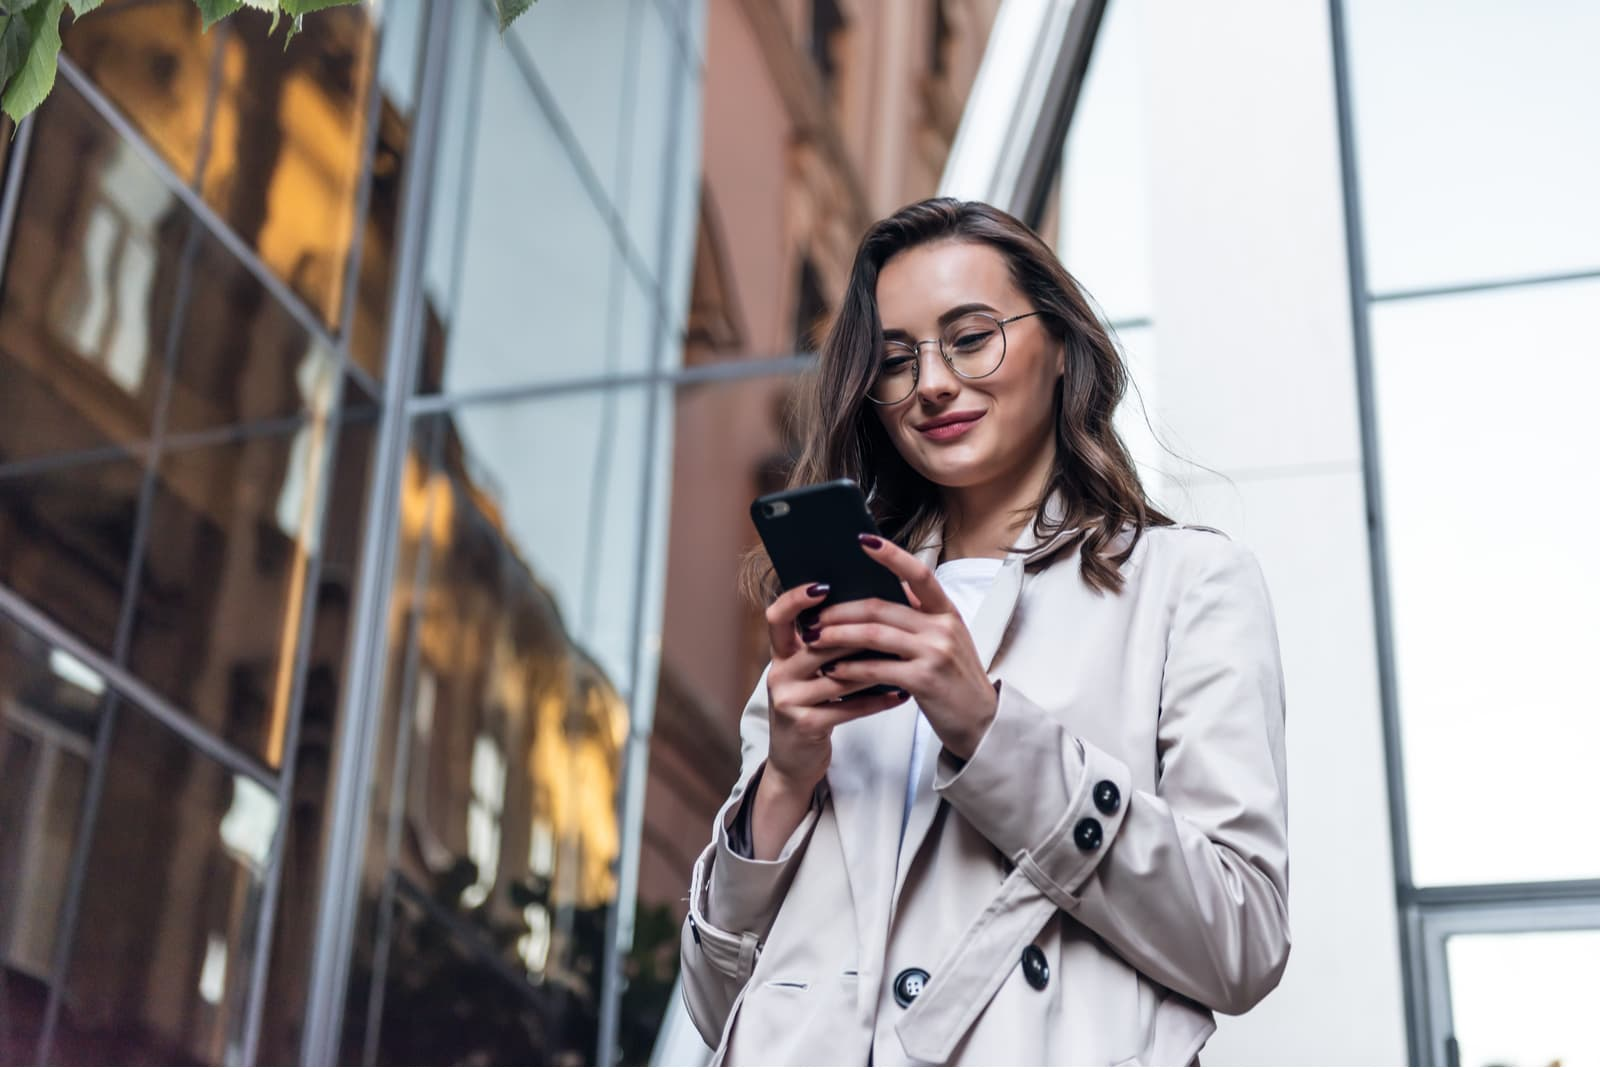 a smiling girl in a white coat stands outside and uses a smartphone